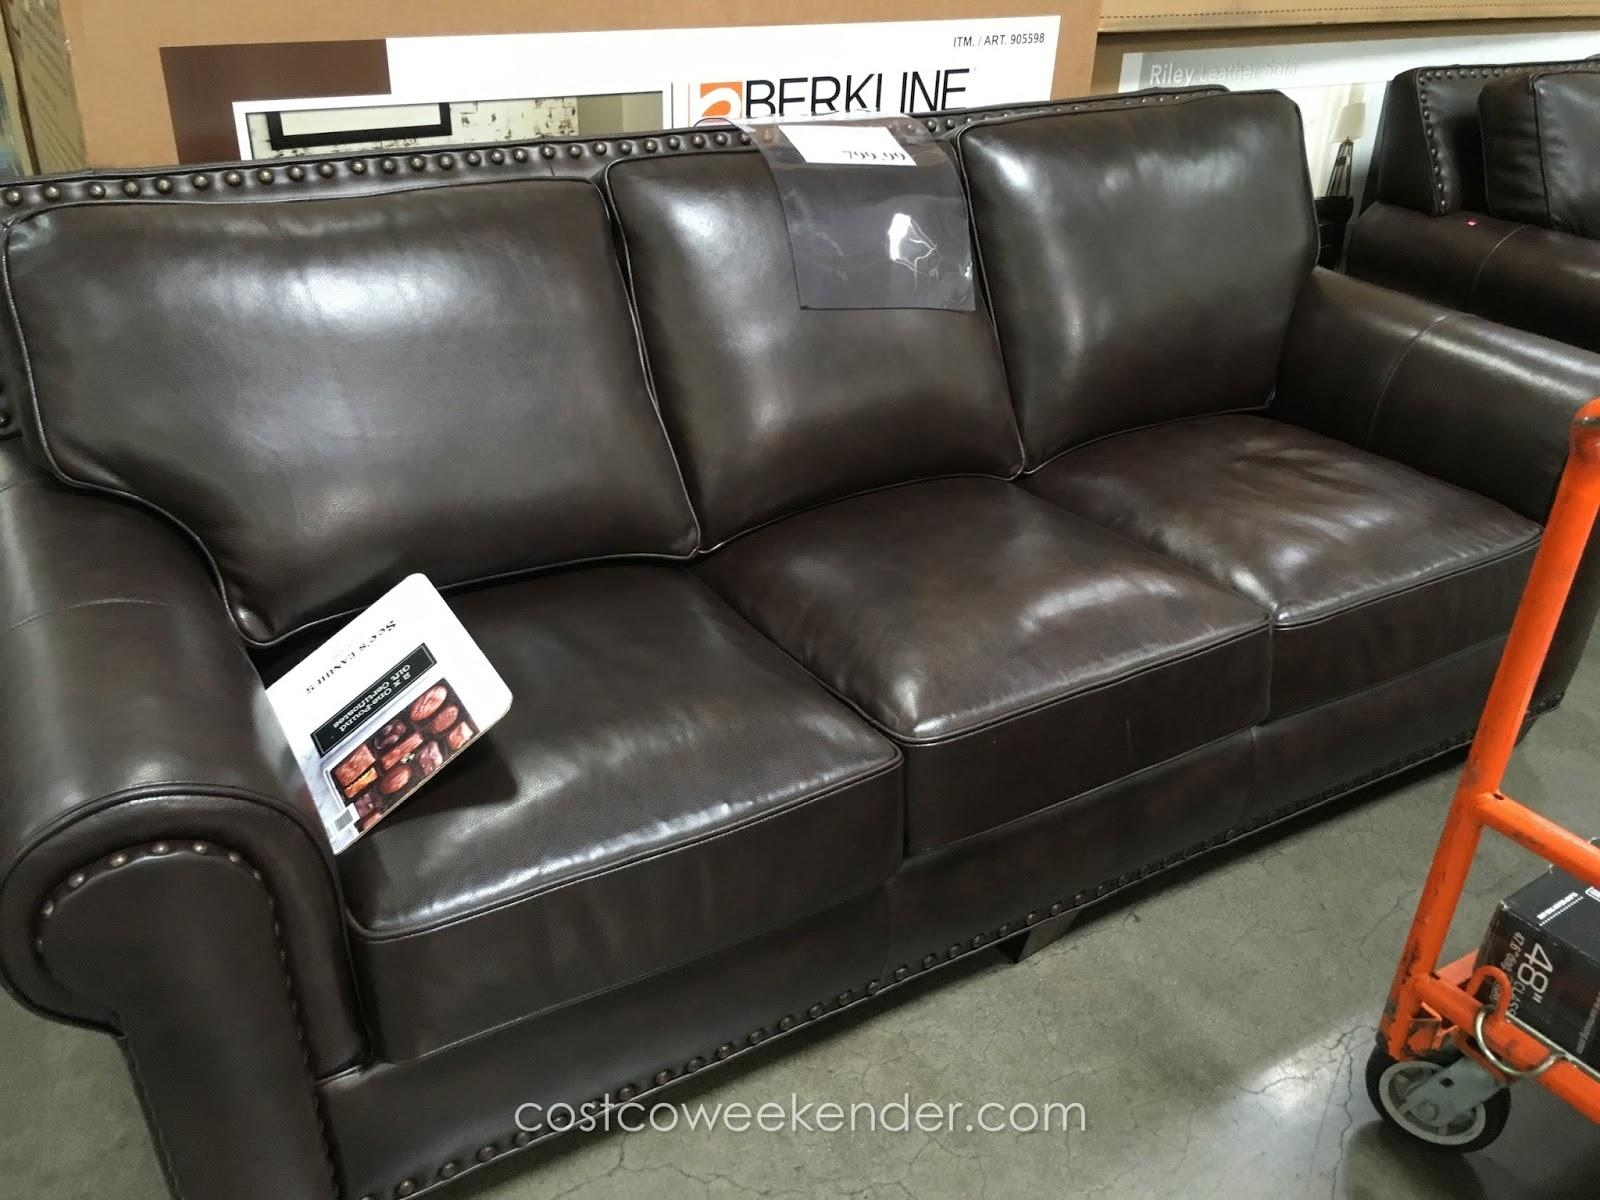 Furniture & Sofa: Enjoy Your Holiday With Costco Home Theater With Berkline Recliner Sofas (View 18 of 20)